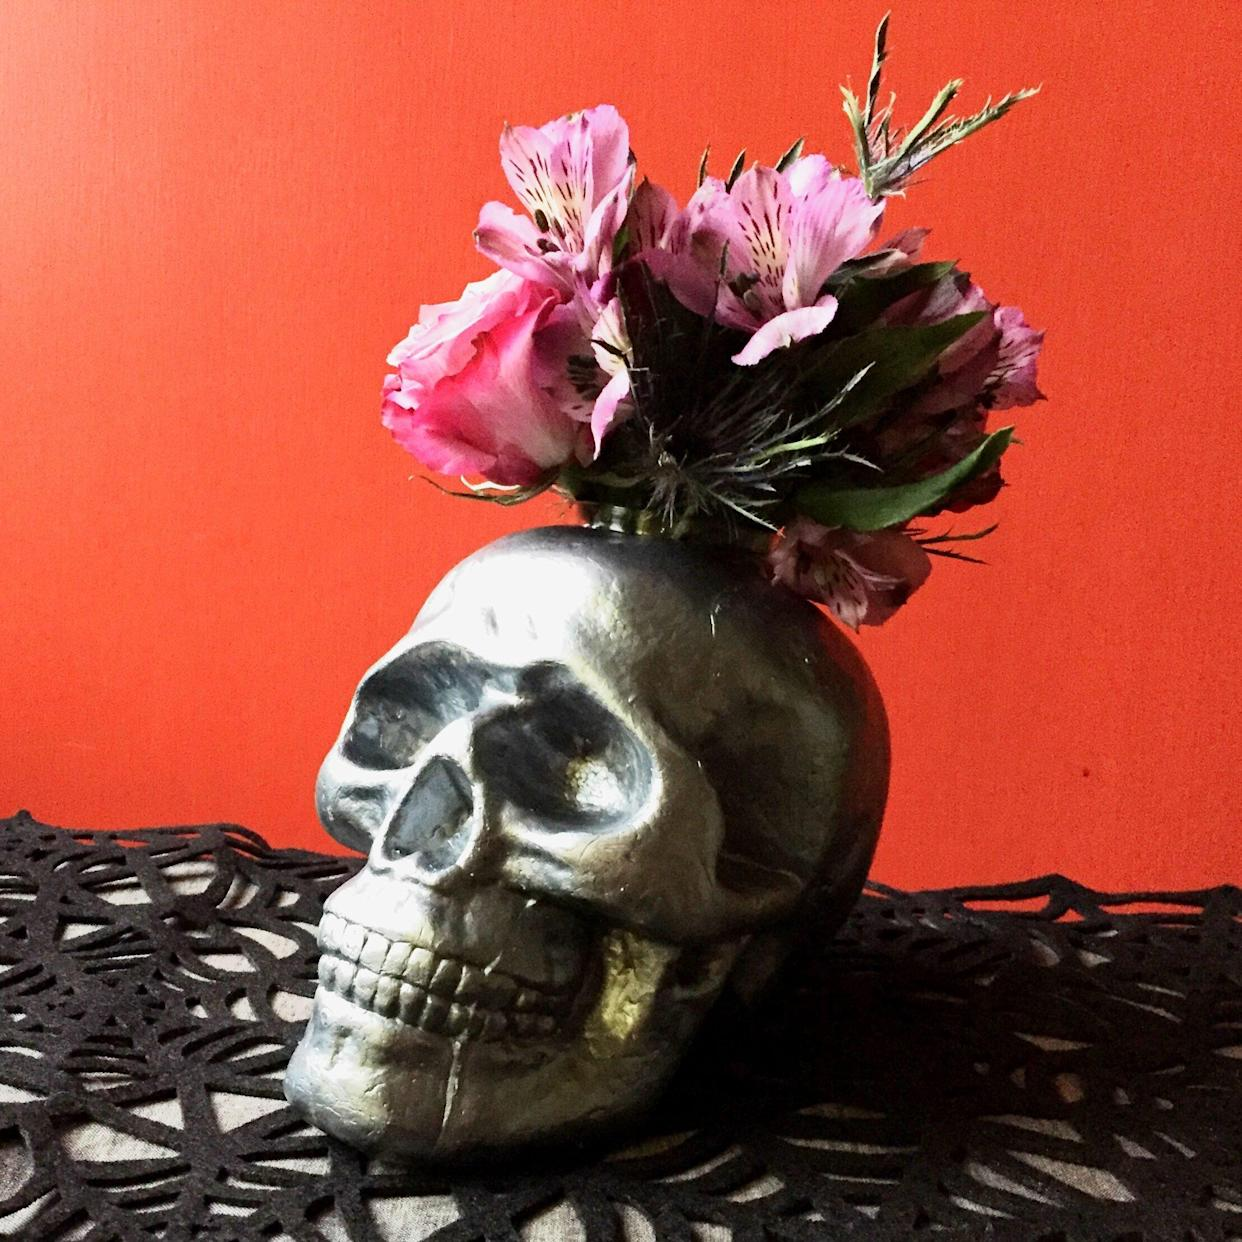 Decoration idea Halloween black skull serving as a vase with pink flowers